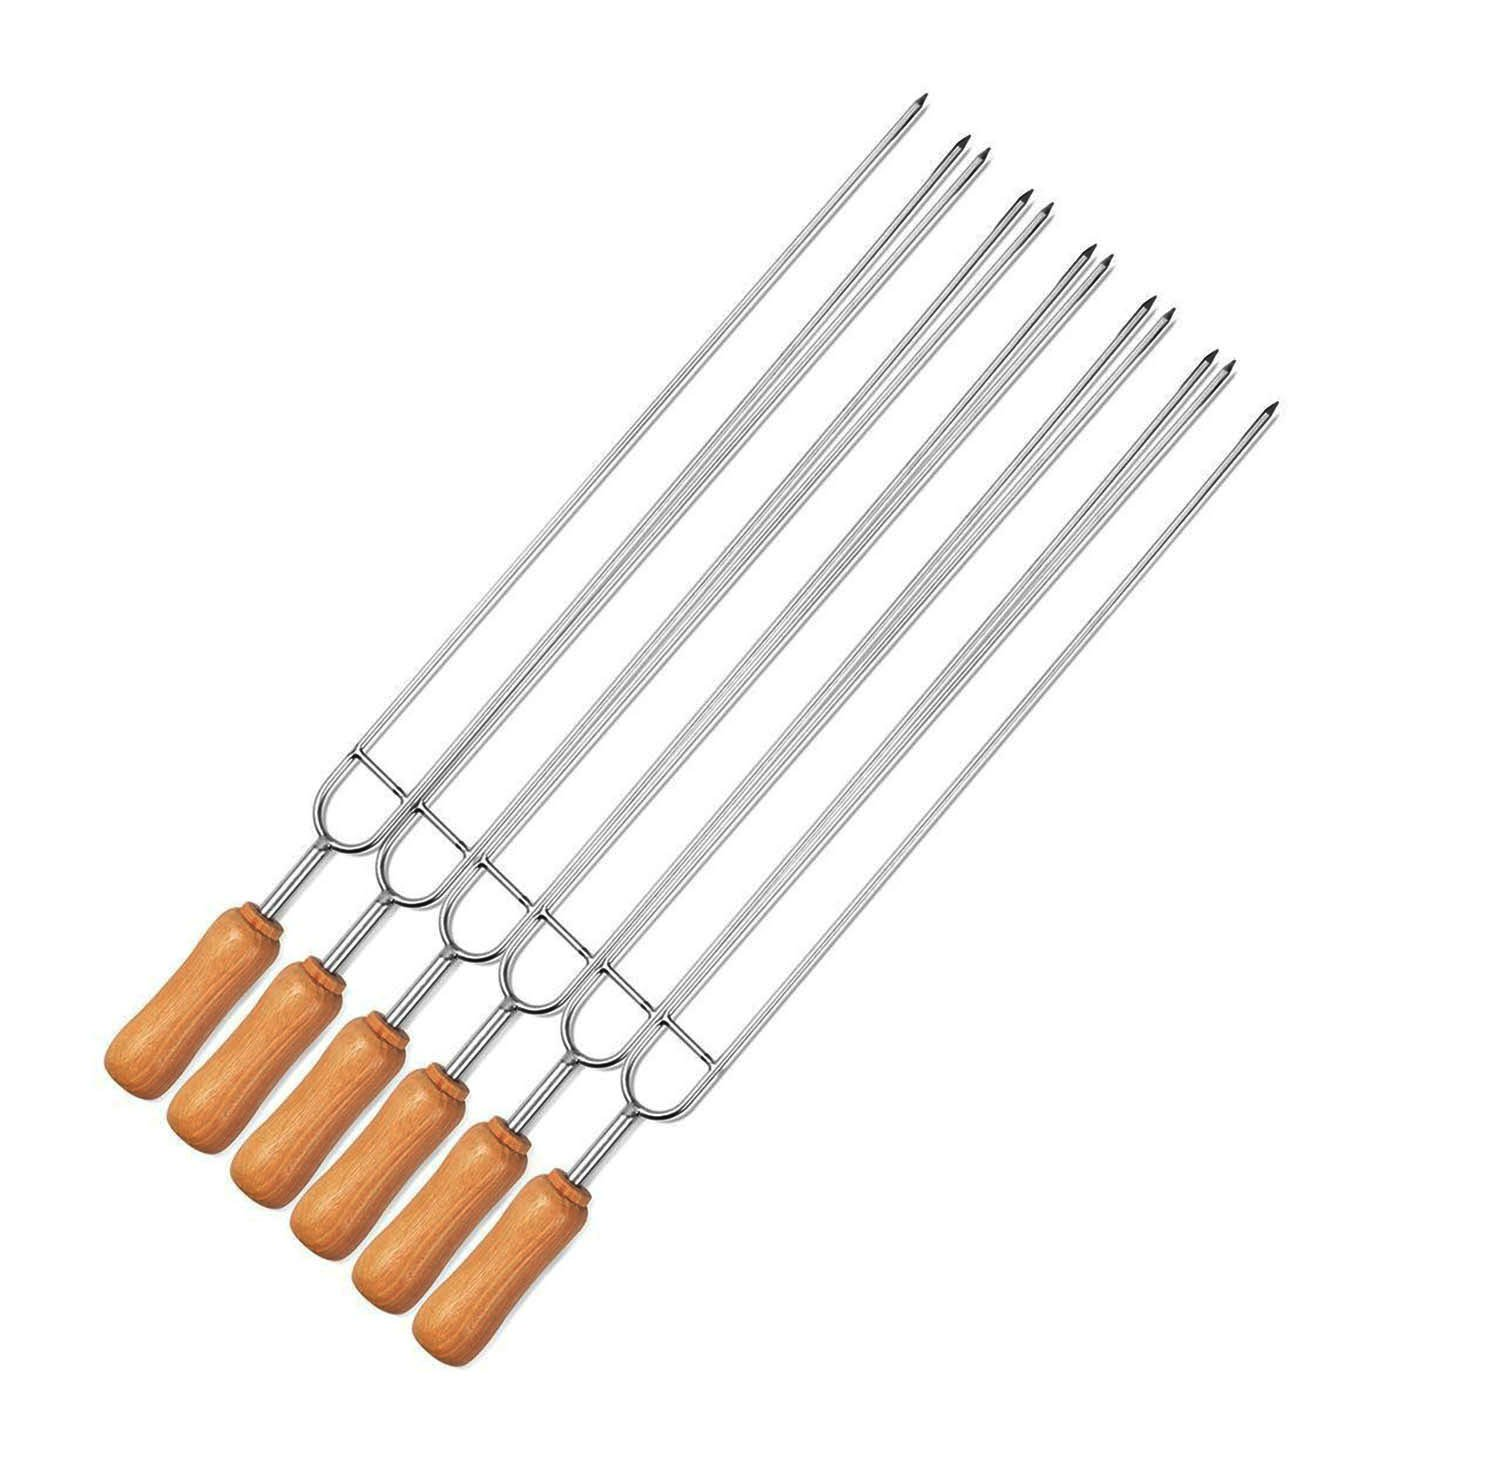 Double Prongs Barbecue Grill Skewers Set Wood Stainless Steel 13.7 inch 6 Pieces